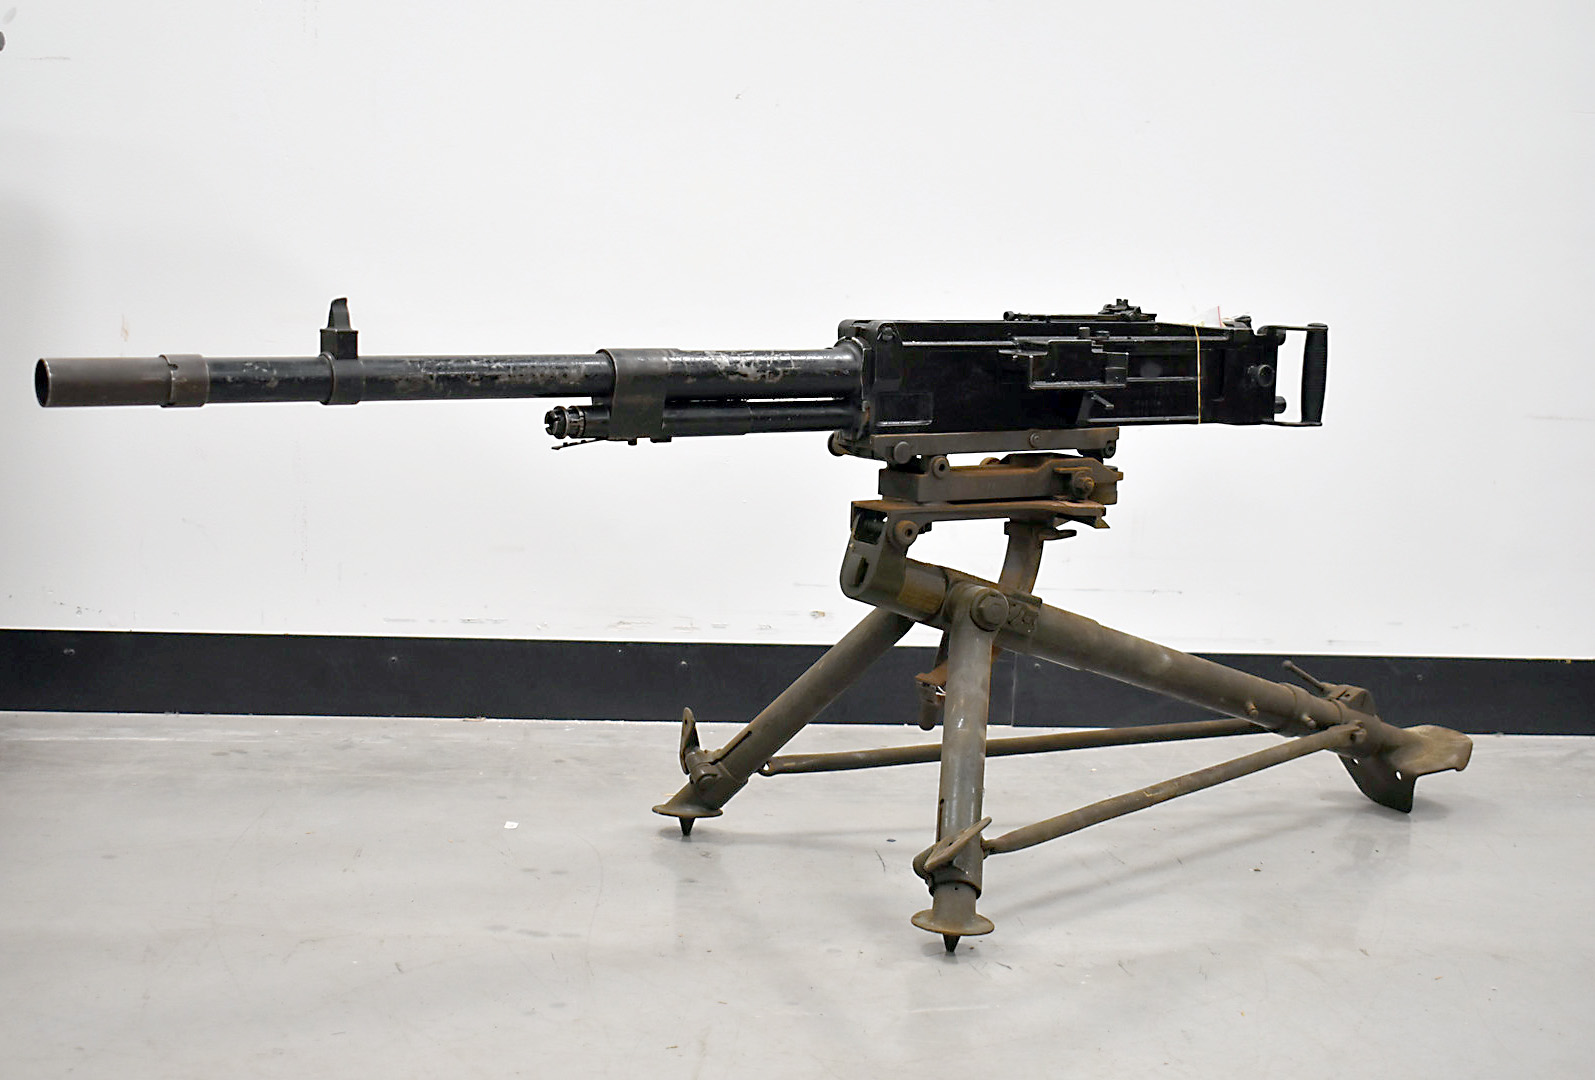 A deactivated Italian Breda M37 7.92mm Heavy Machine gun and tripod, serial 8805, deactivated to the